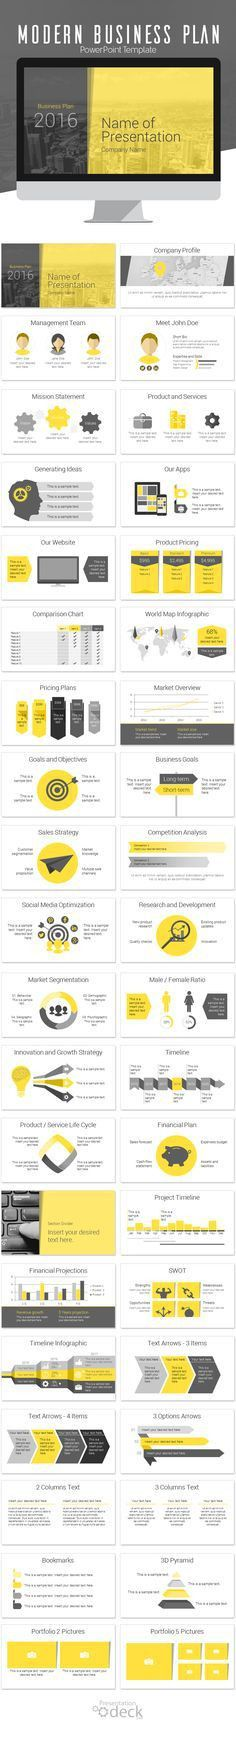 Business Plan (PowerPoint Templates) | Business planning, Business ...